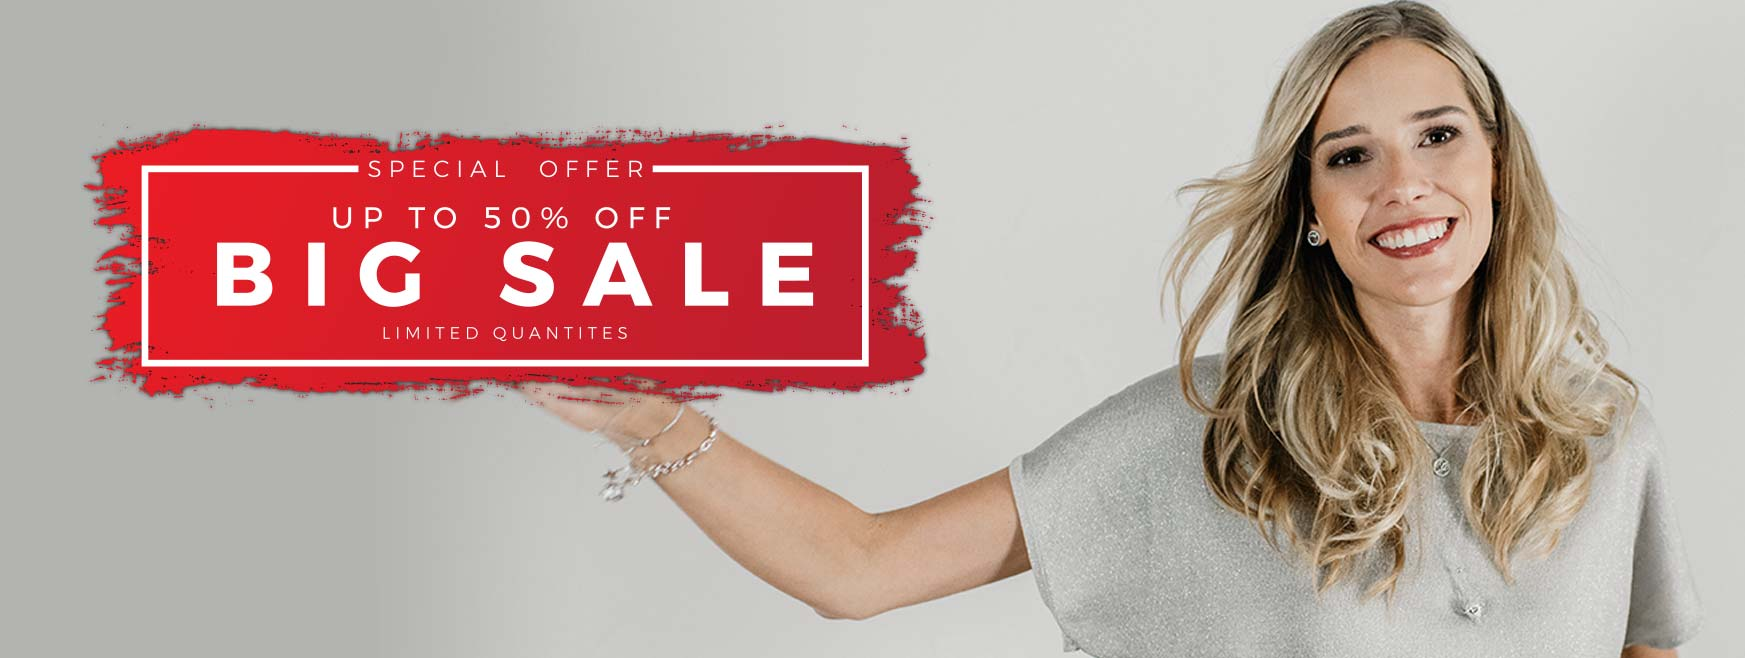 Up to 50% off - limited quantities